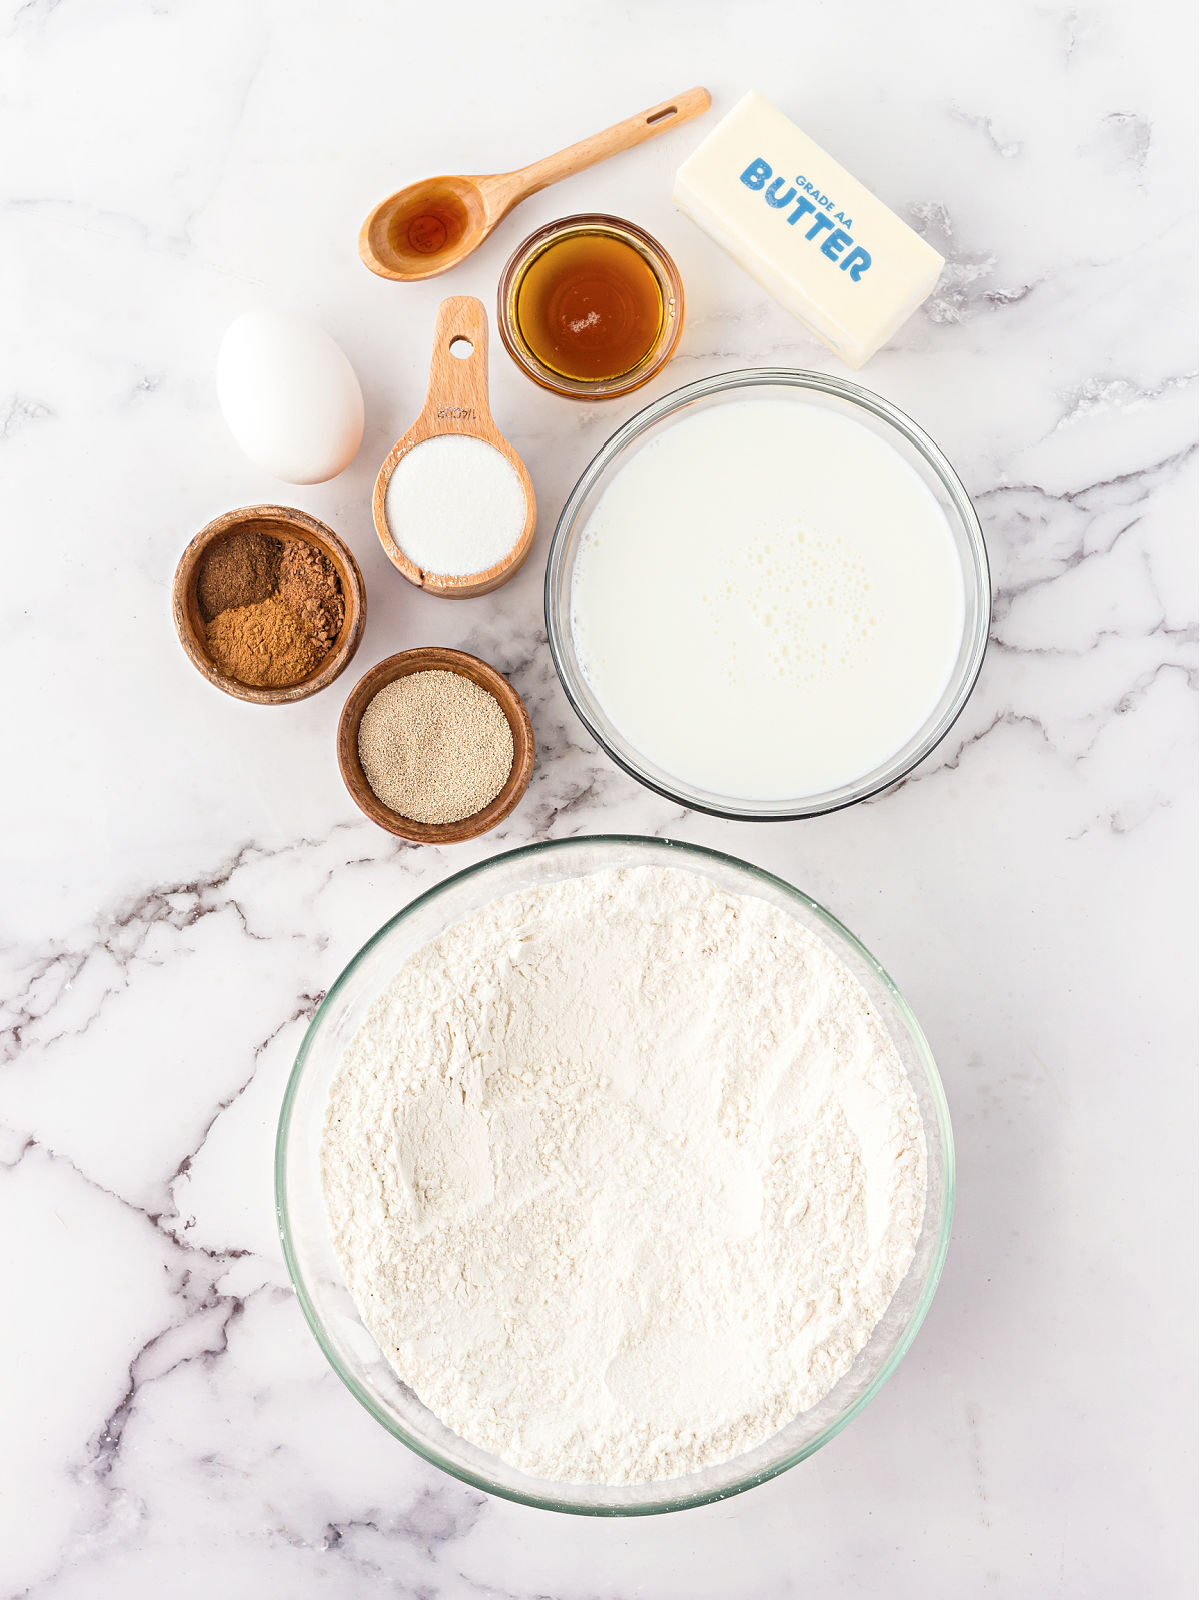 Flour, milk, yeast, spices, maple syrup, and butter on a marble counter.